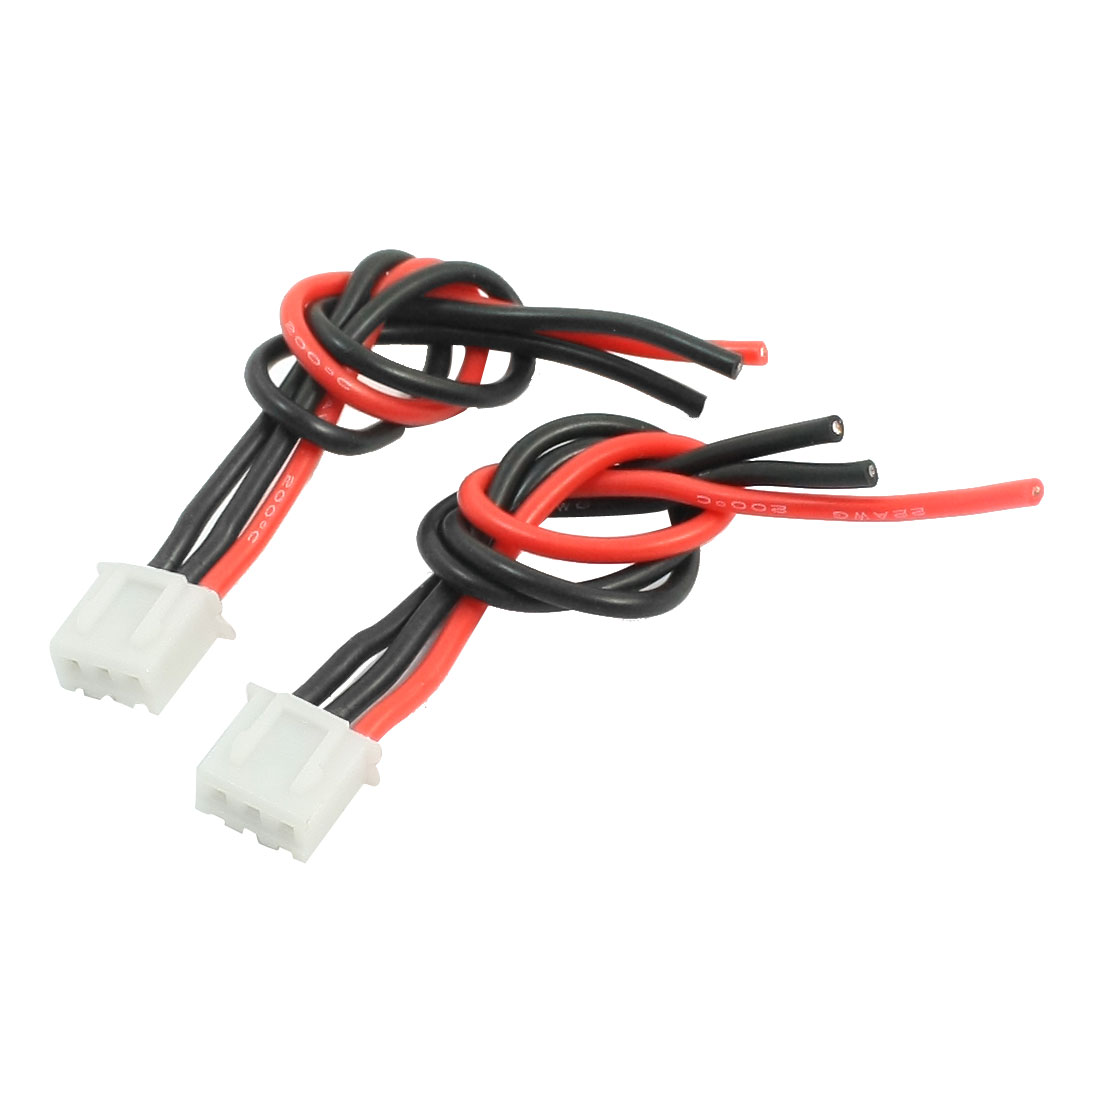 "2 Pcs 4.5"" Length JST-XH 3Pin JST-XH Balance Charger Adapter Extension Lead Wire 22AWG for RC 2S Lipo Battery"